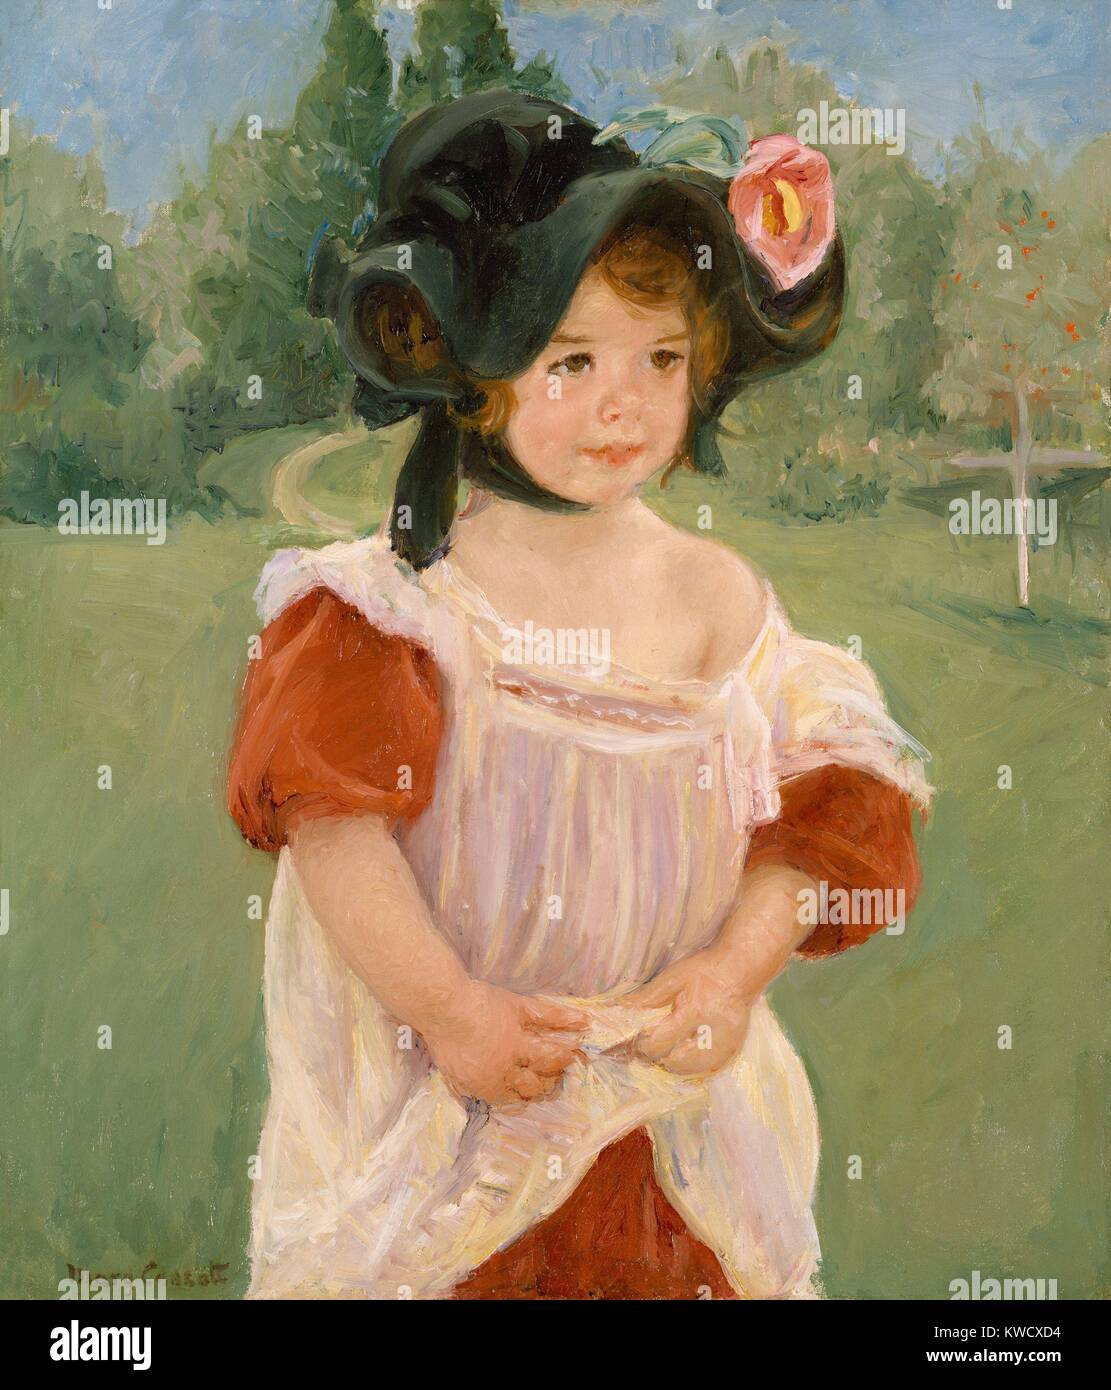 Margot Standing in a Garden, by Mary Cassatt, 1900, French impressionist painting, oil on canvas. Margot Lux, a - Stock Image